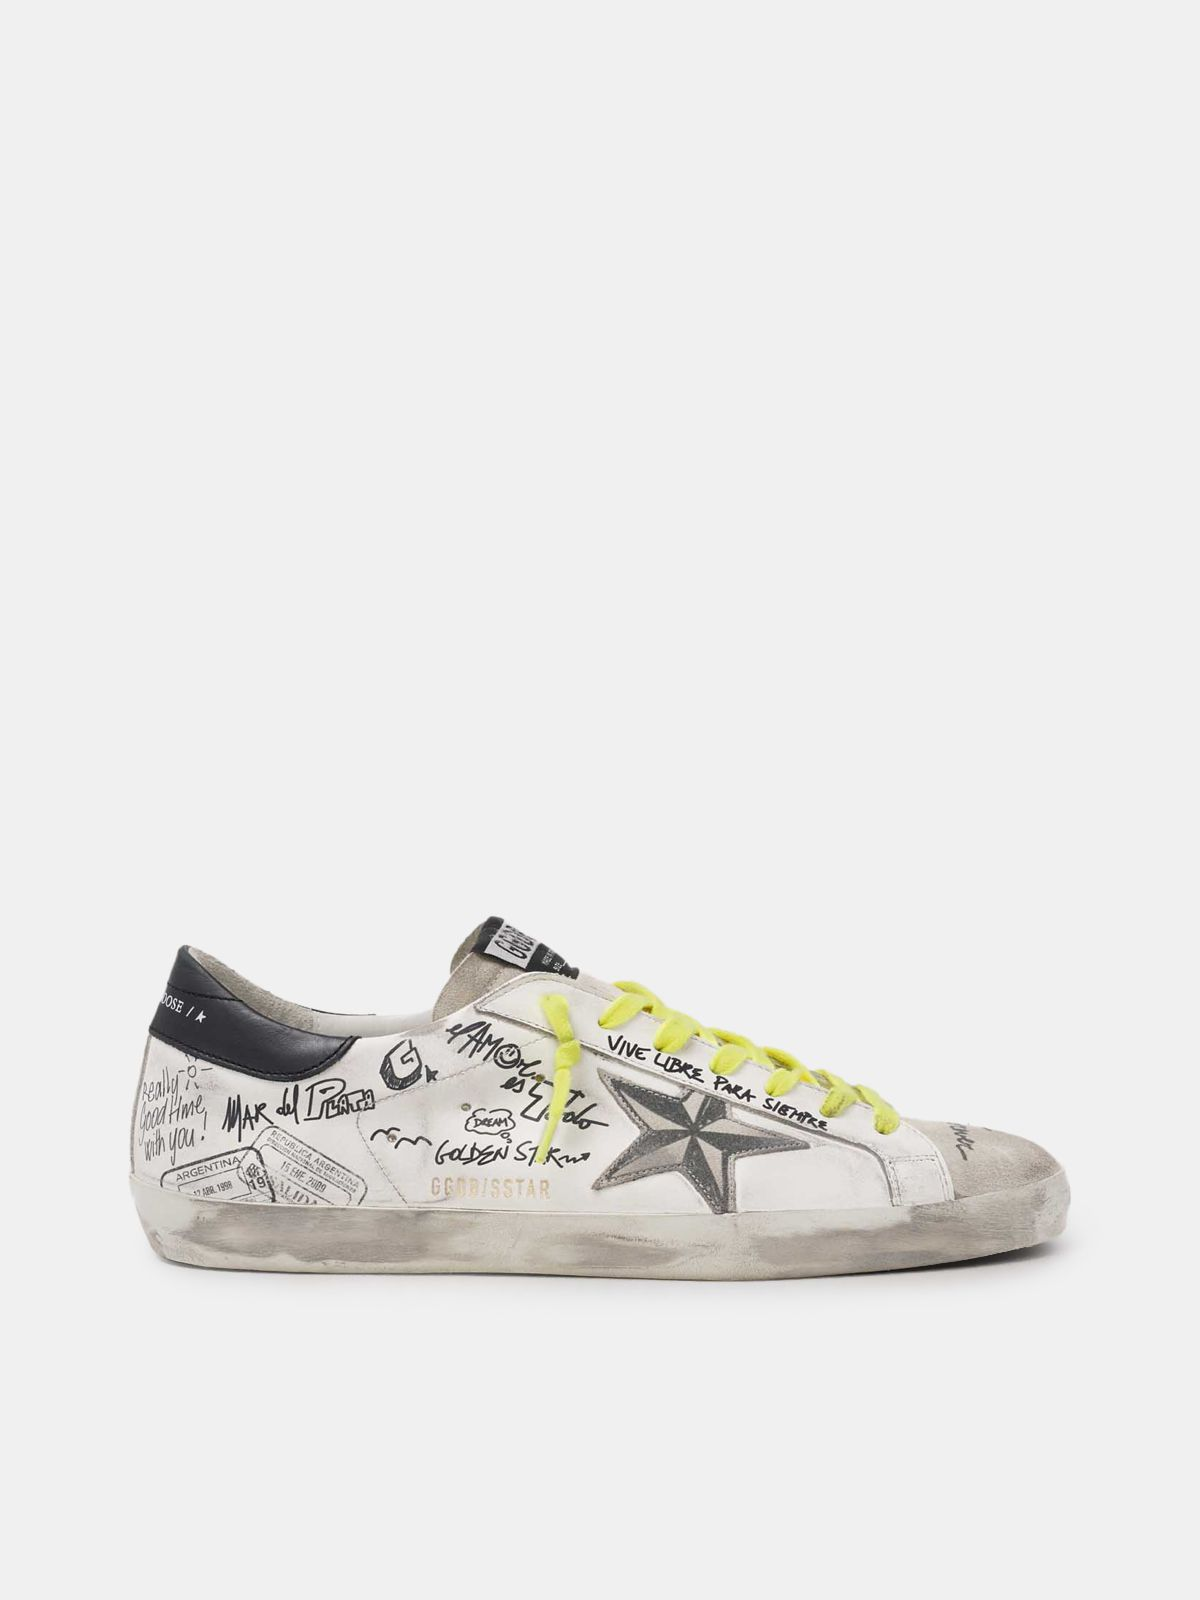 Men's Journey Super-Star sneakers with graffiti